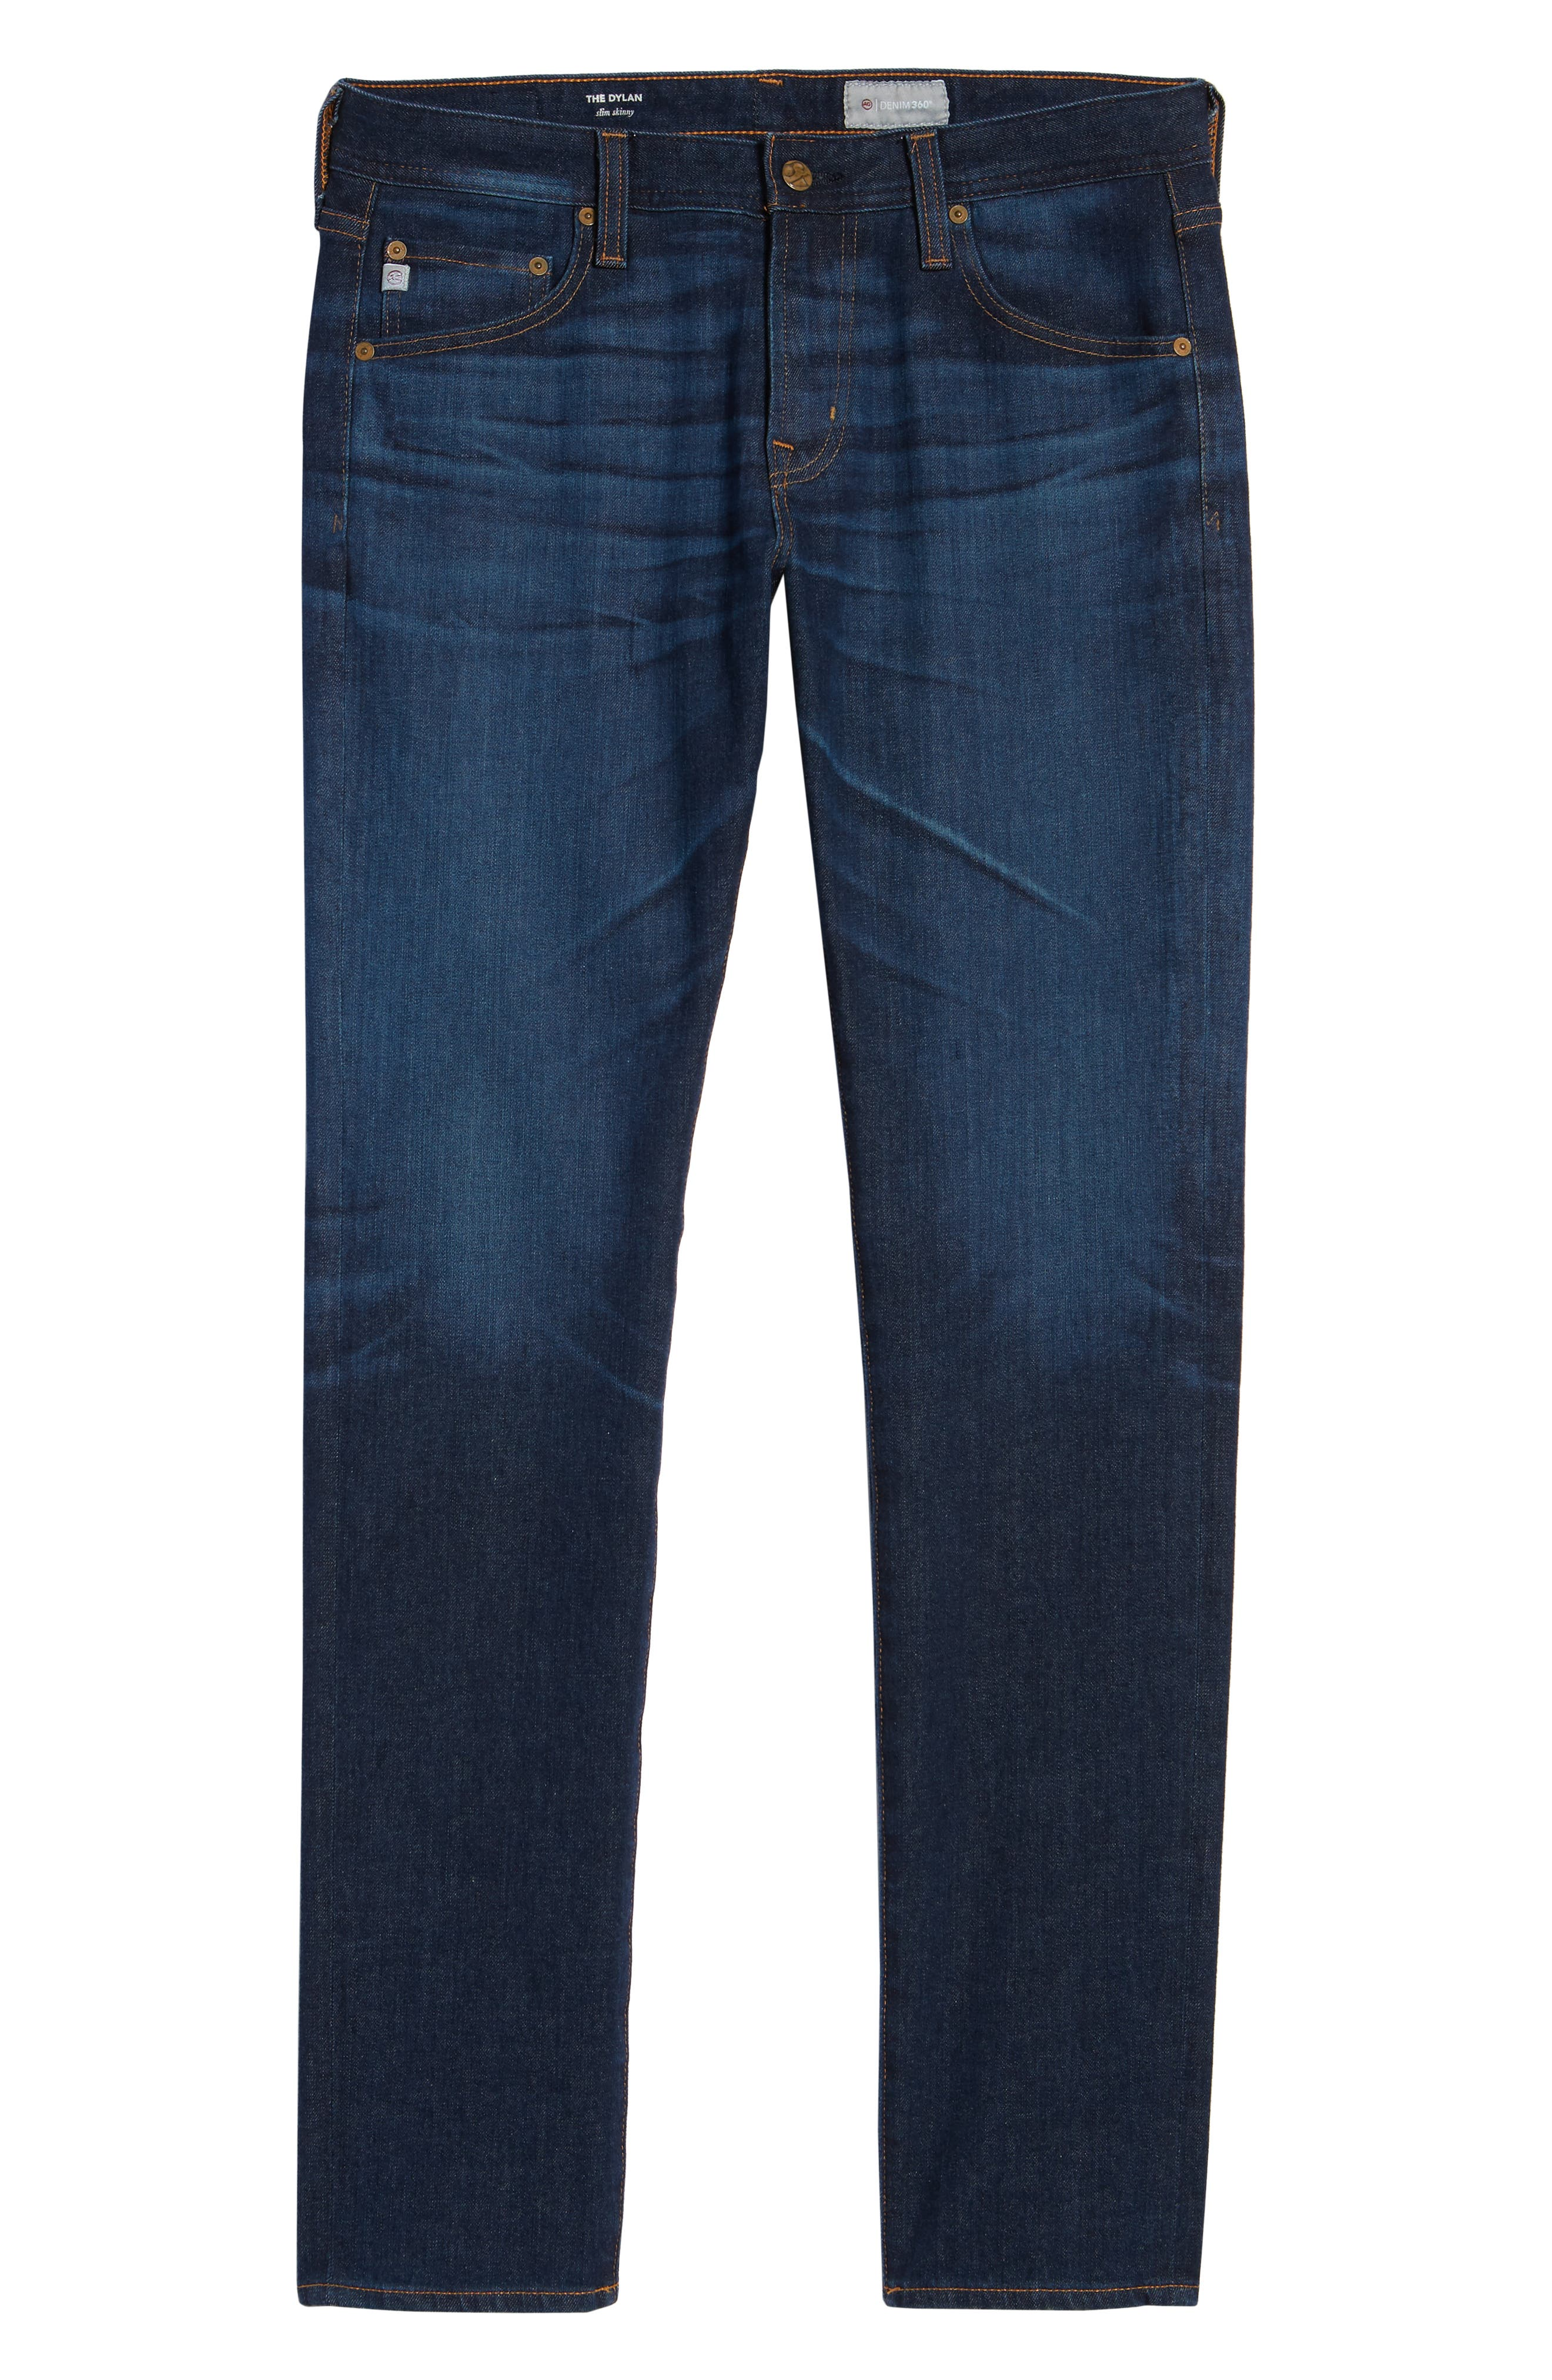 Dylan Skinny Fit Jeans,                             Alternate thumbnail 6, color,                             5 YEARS